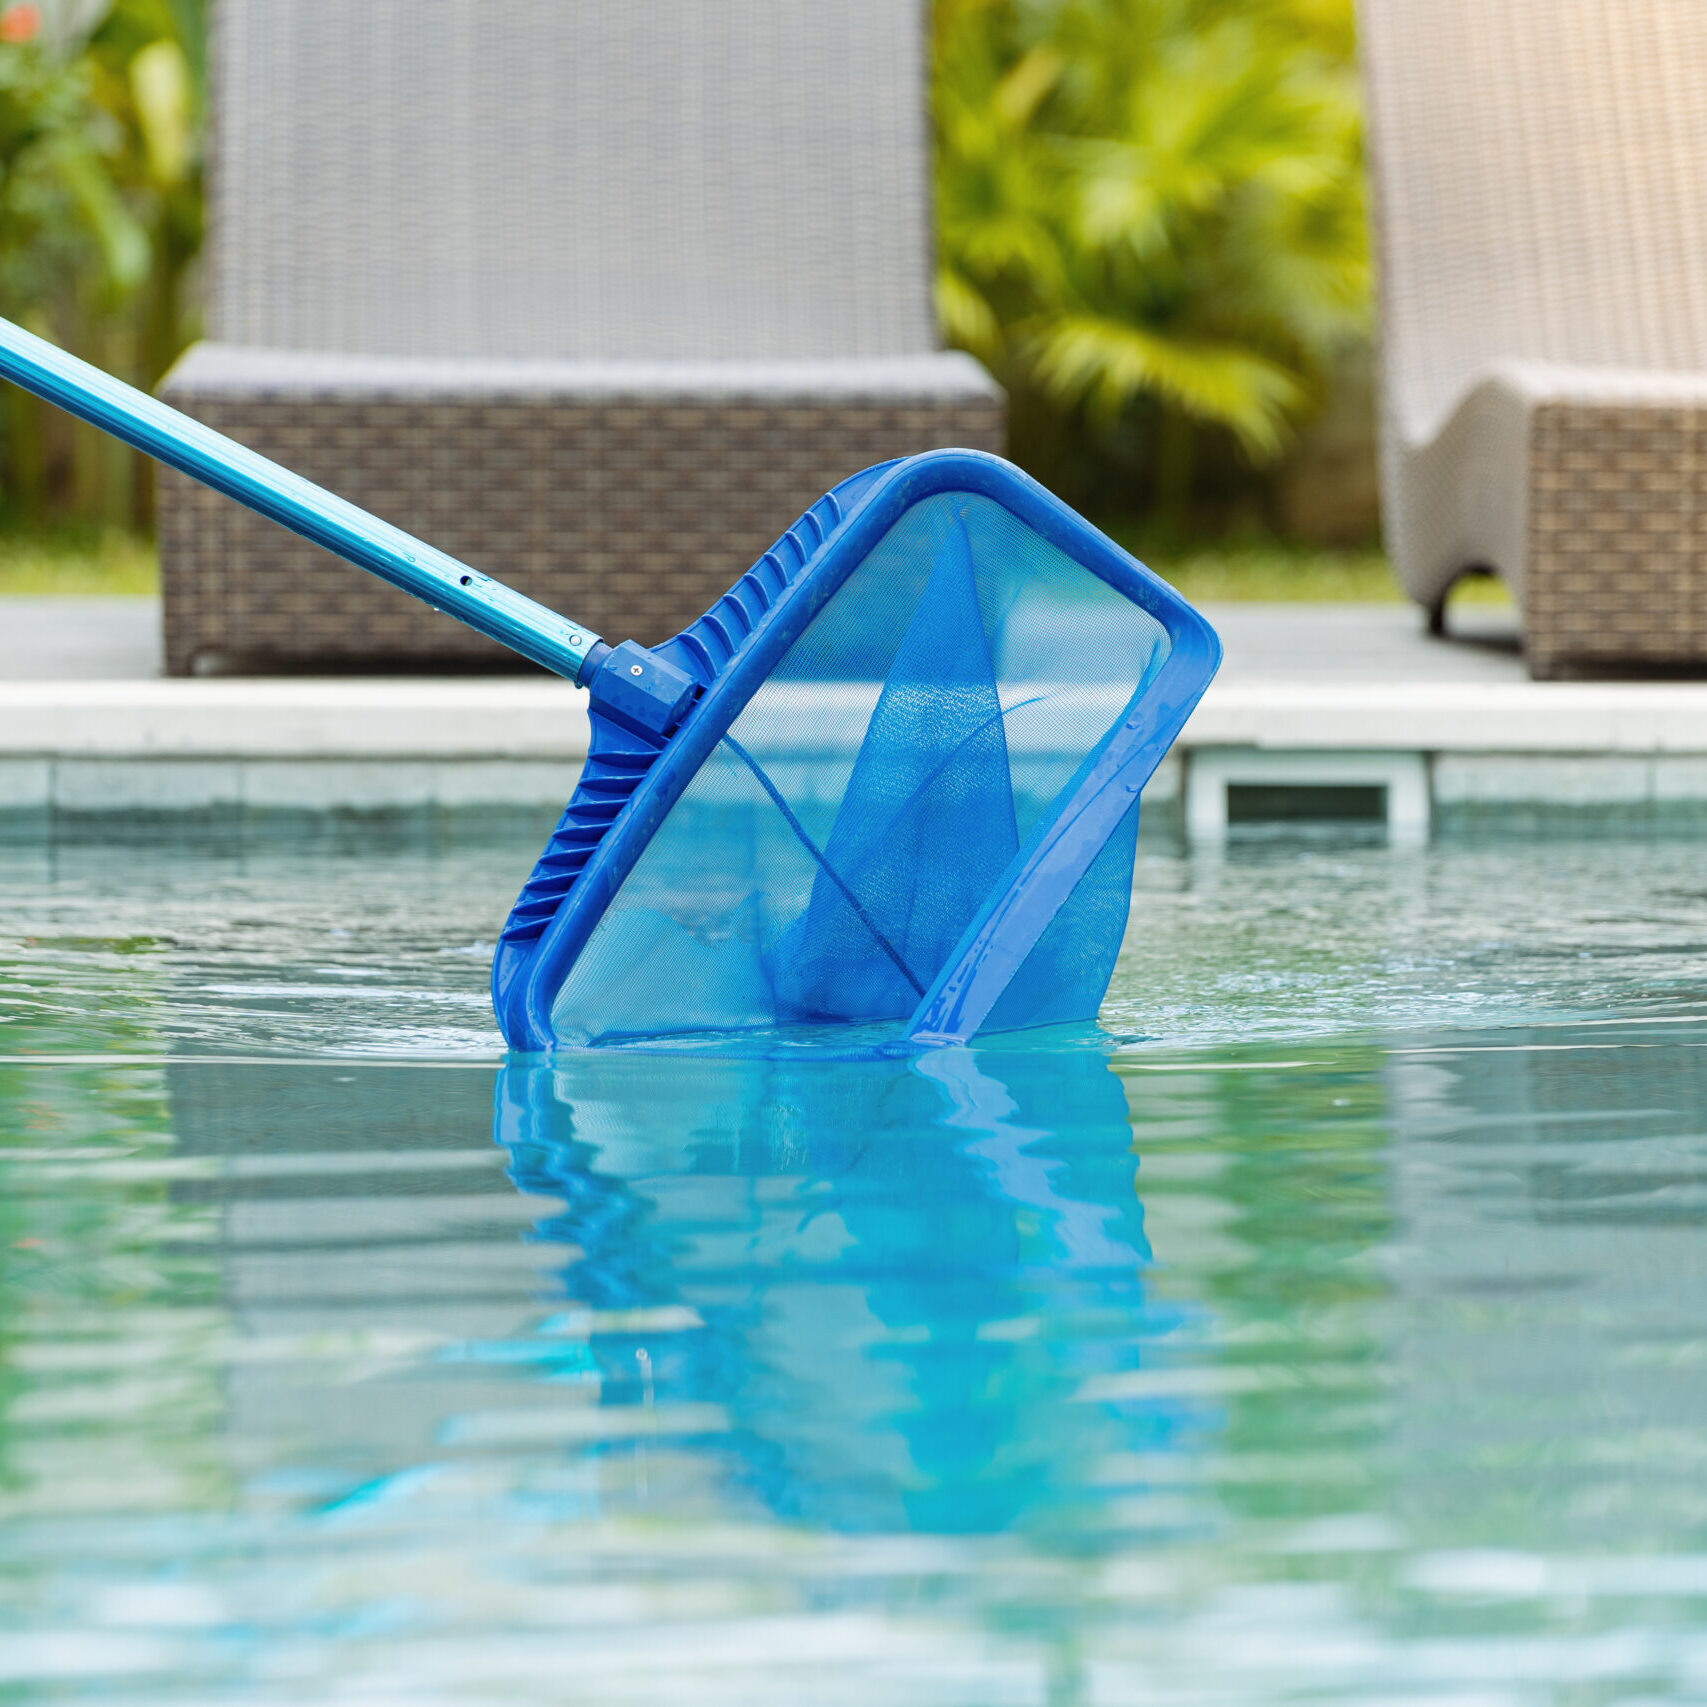 Cleaning,Swimming,Pool,Of,Fallen,Leaves,With,Skimmer,Net,Equipment